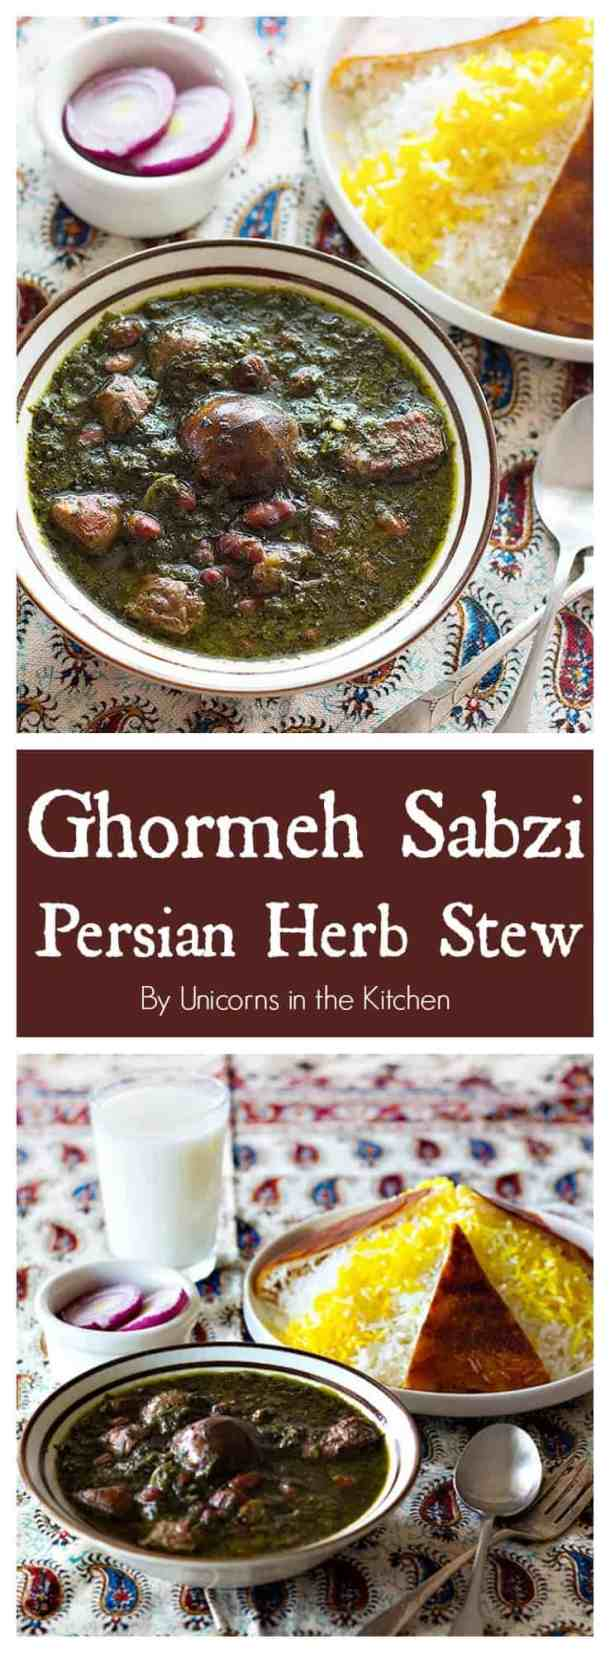 Ghormeh Sabzi - Persian Herb Stew is one of the most delicious stews in Persian cuisine. A mixture of fragrant herbs and spices makes this stew very special!#persianrecipes #ghormehsabzi #herbstew #persianfoods